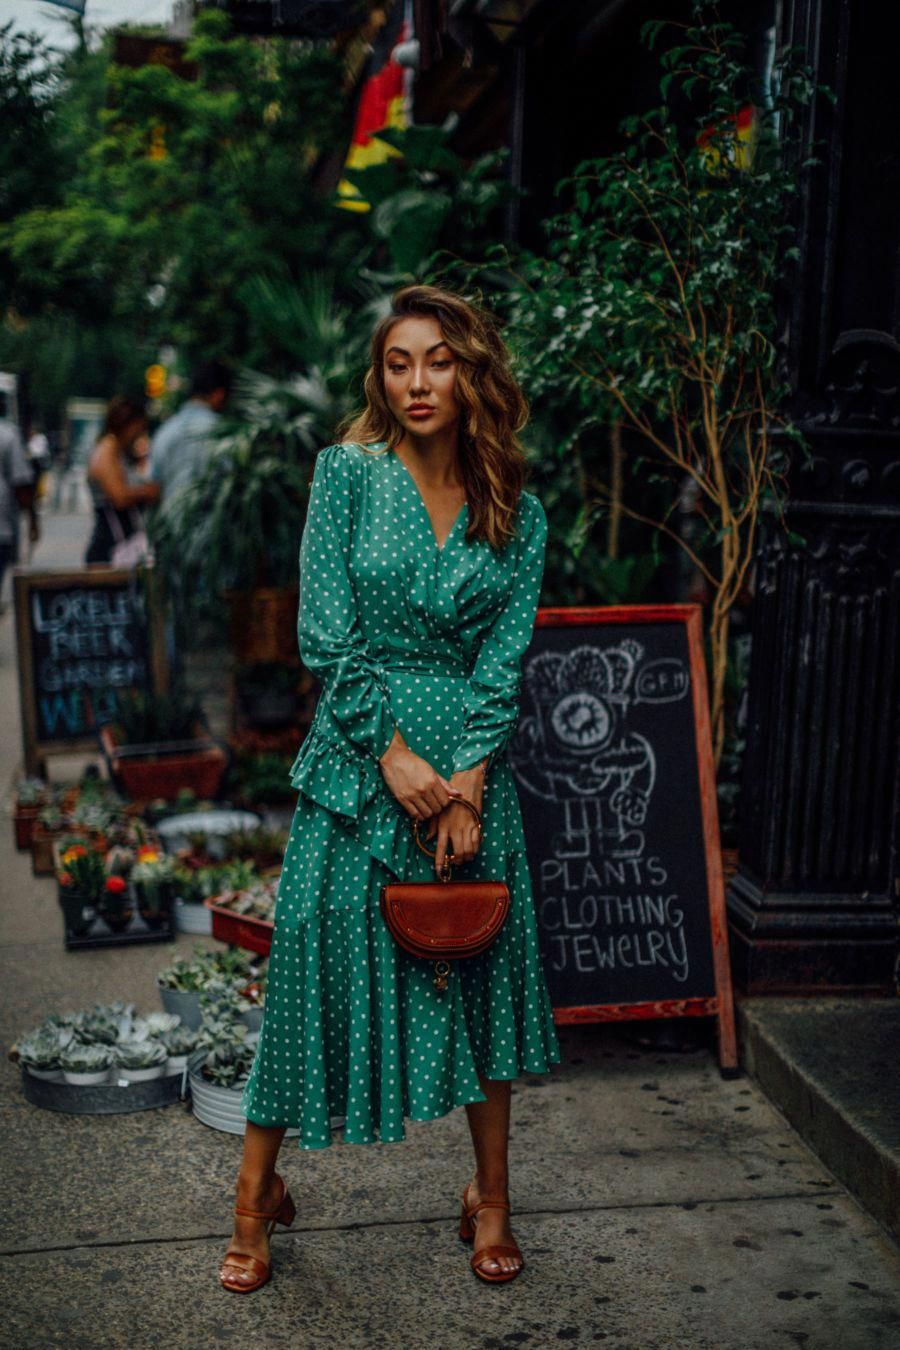 The Only 3 Wedding Guest Outfits You Need This Summer Green Polka Dot Dress Summer Cocktail Dress Wedding Guest Outfit Summer Wedding Guest Dress Summer [ 1350 x 900 Pixel ]